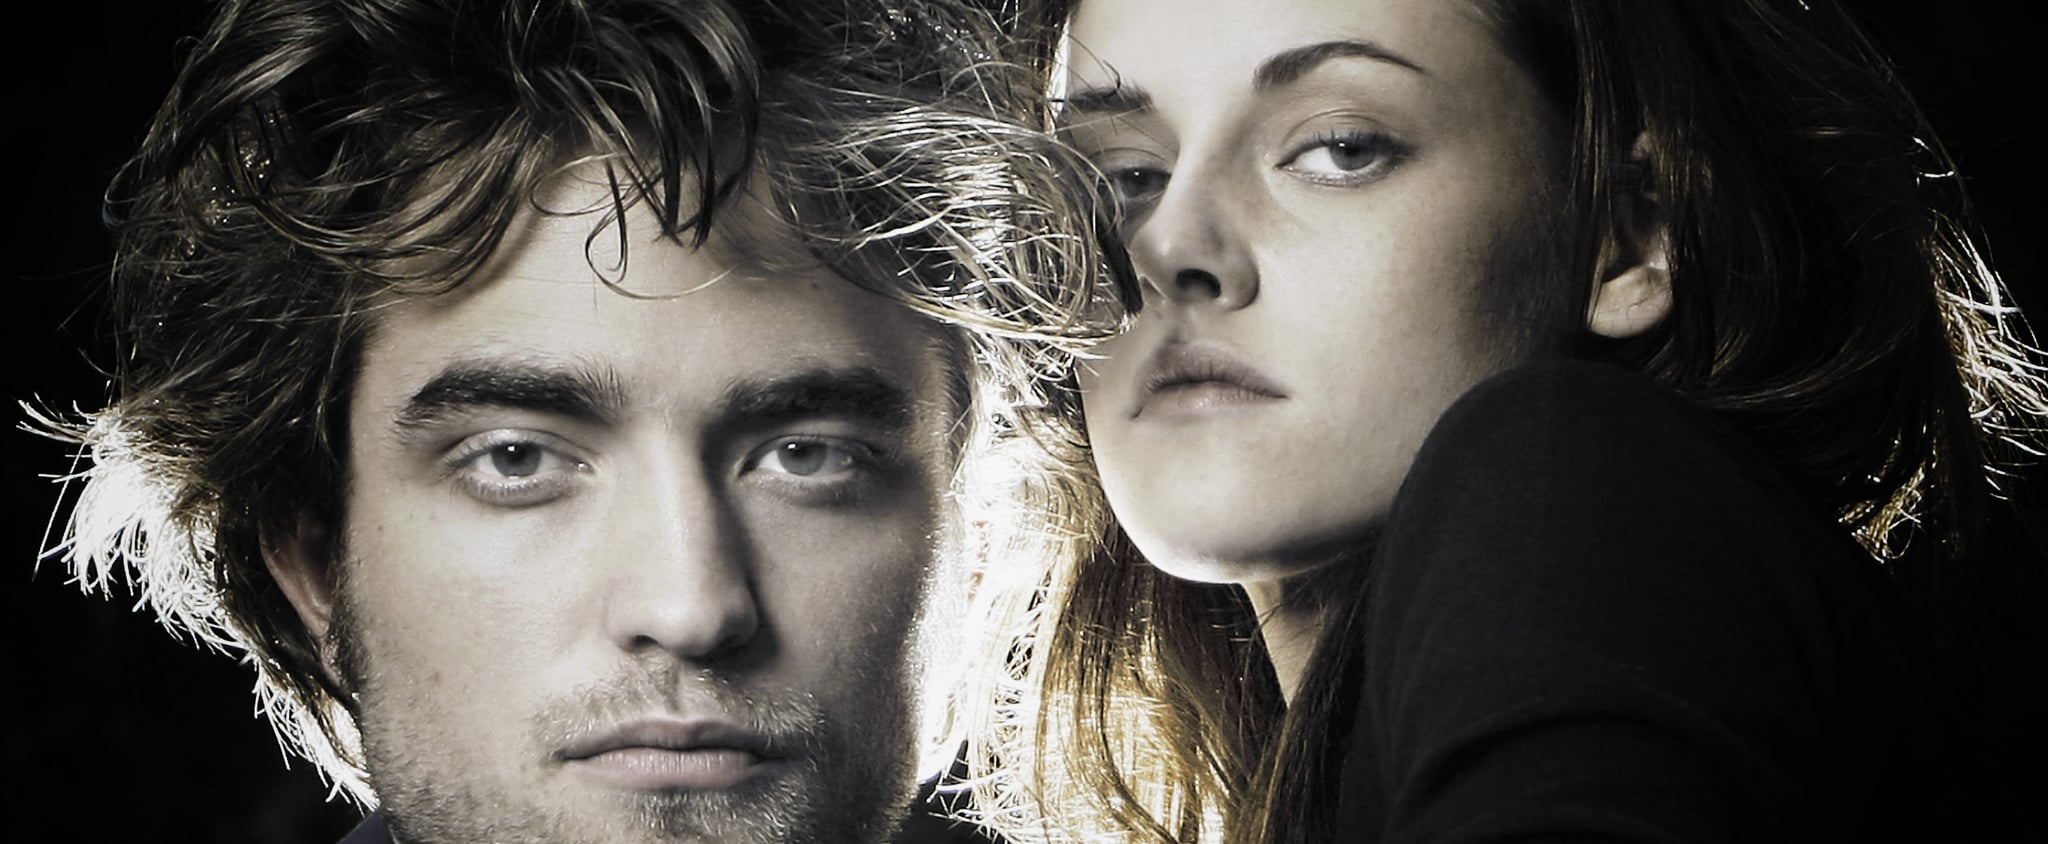 Twilight Movie Back in Theaters 2018